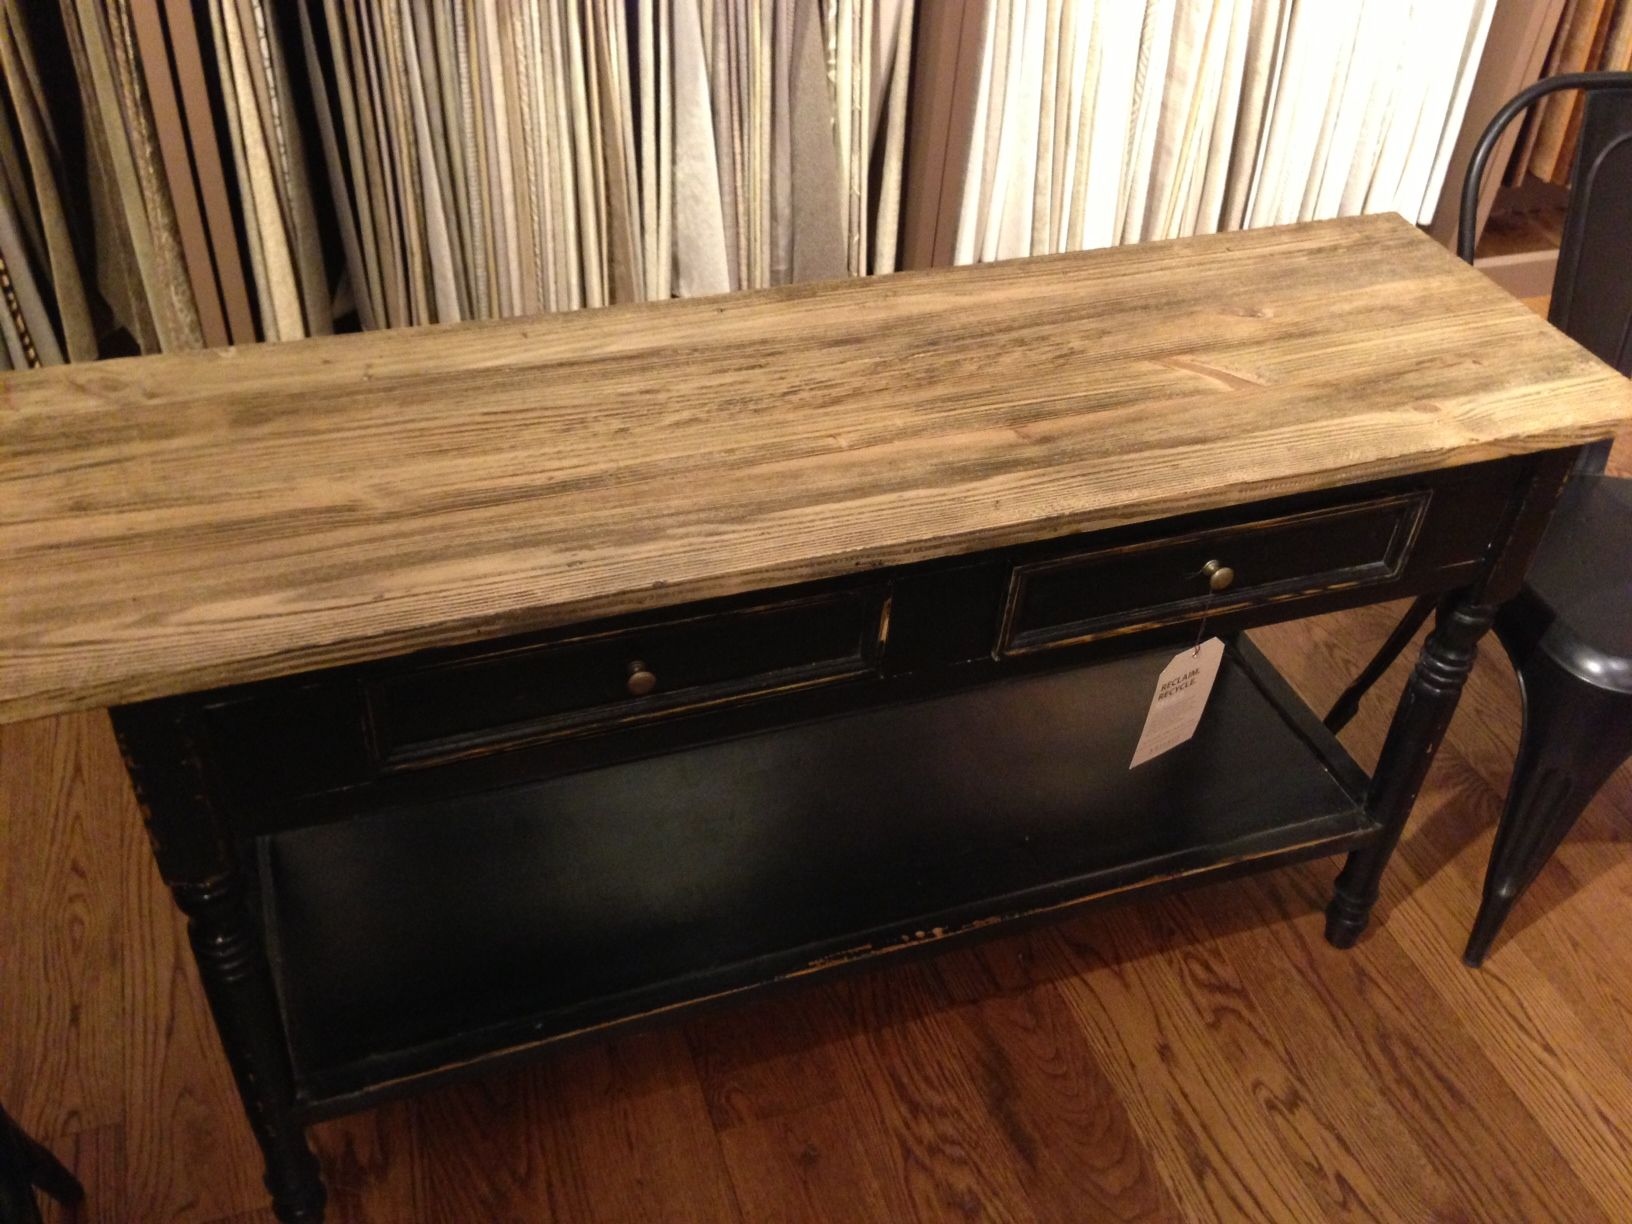 Mix and match console table.